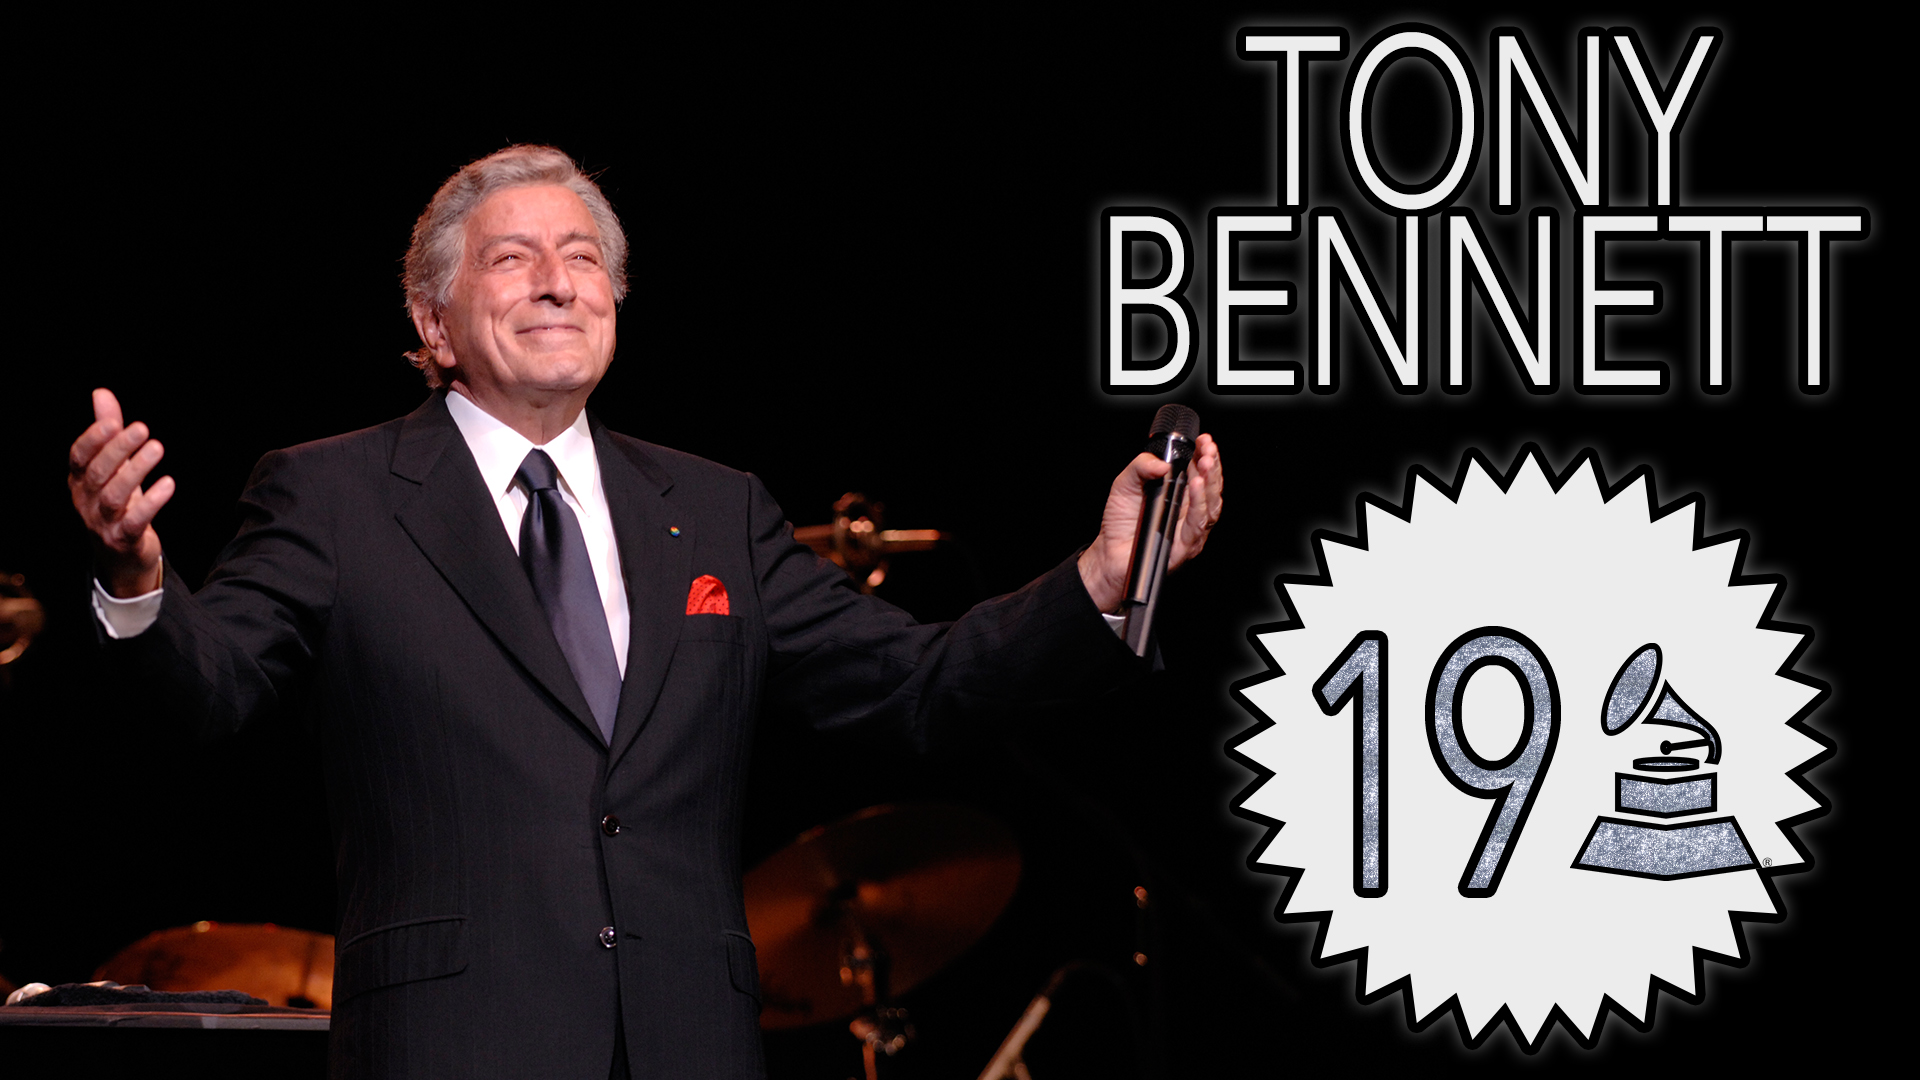 Tony Bennett with 19 GRAMMY Awards